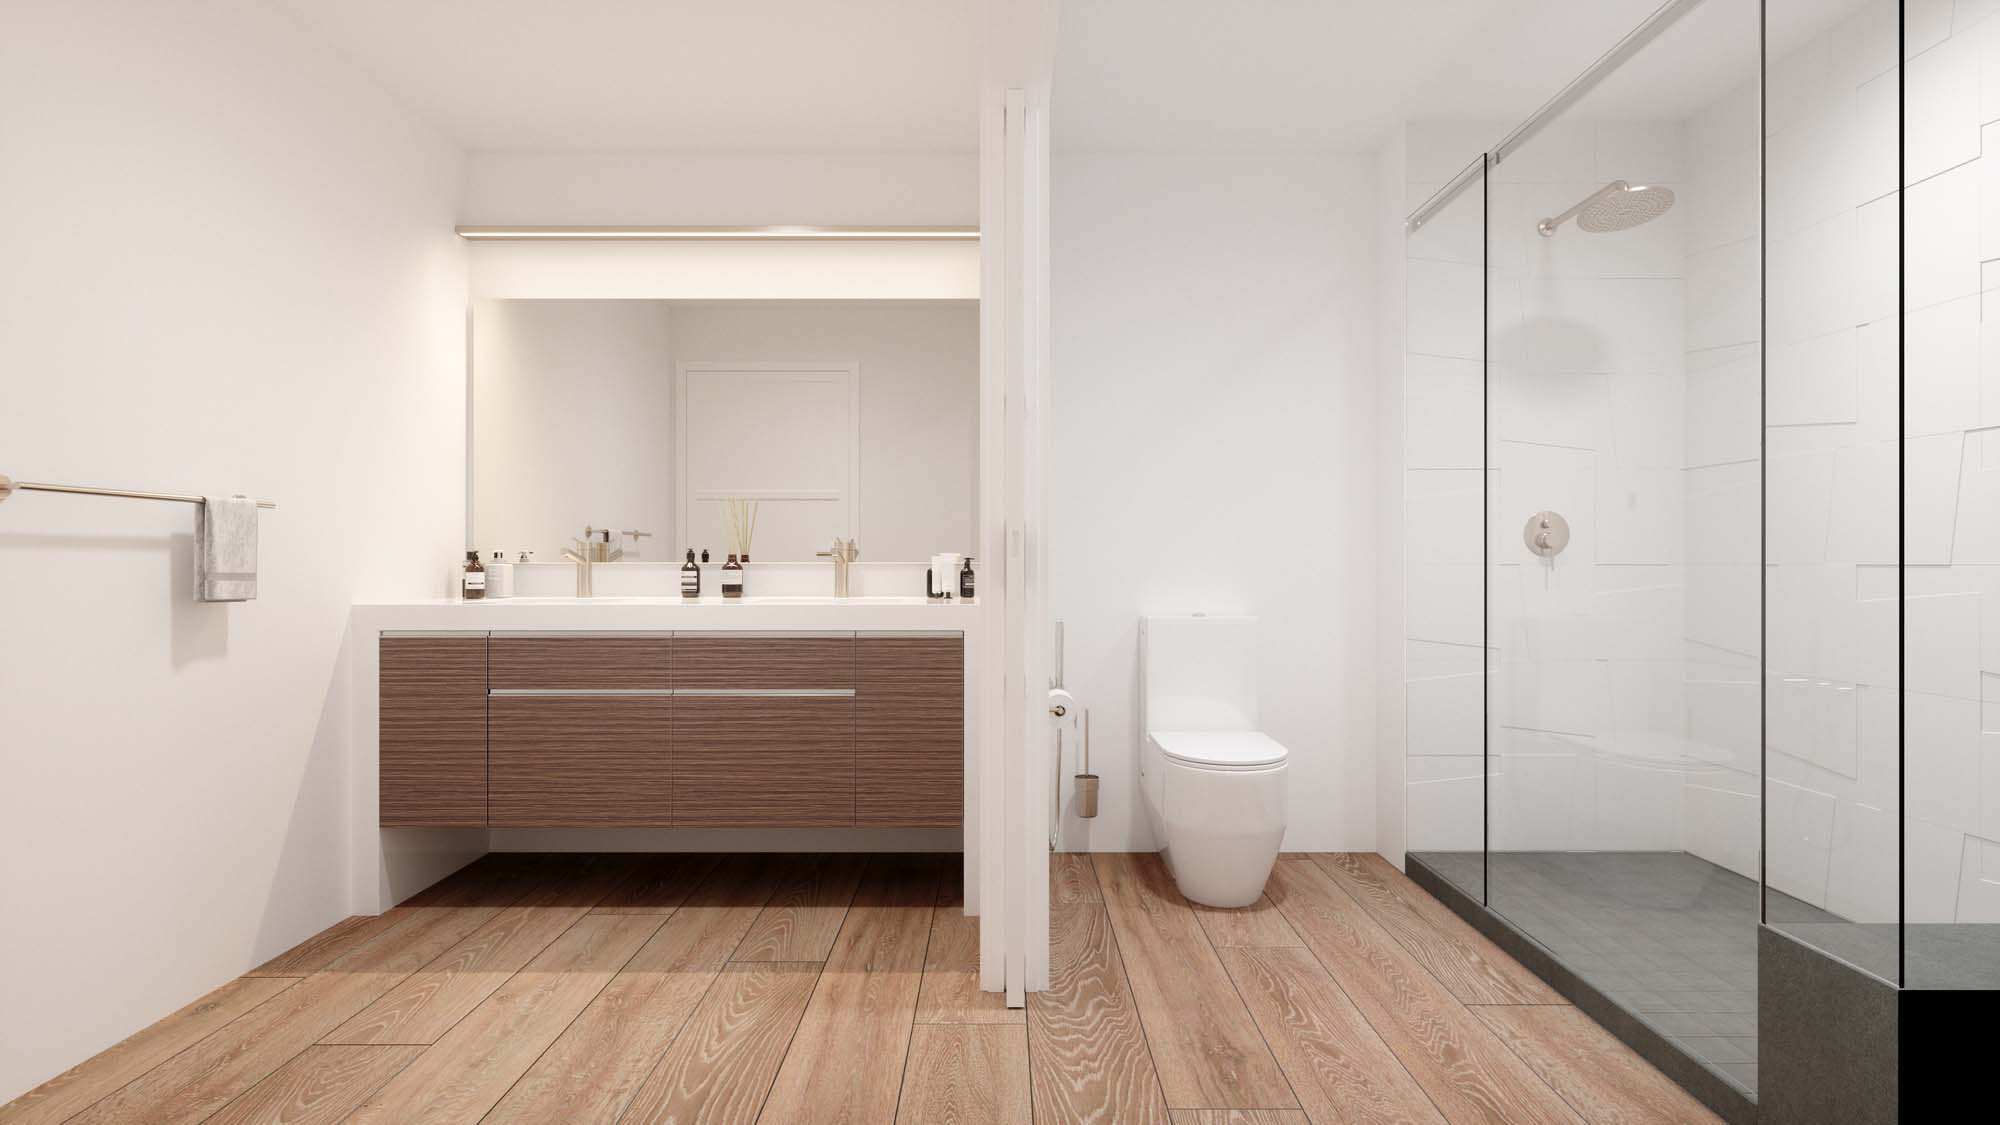 bathroom area with wood-style flooring, dual sink, stand up shower, and single mirror